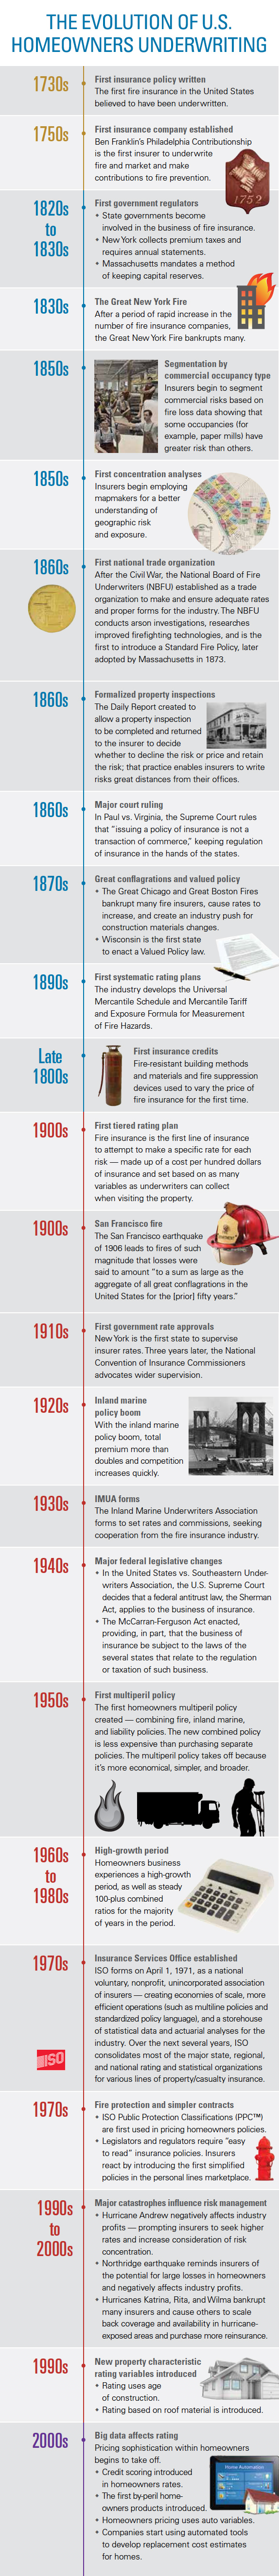 Evolution_of_homeowners_ins_infographic_good_010515